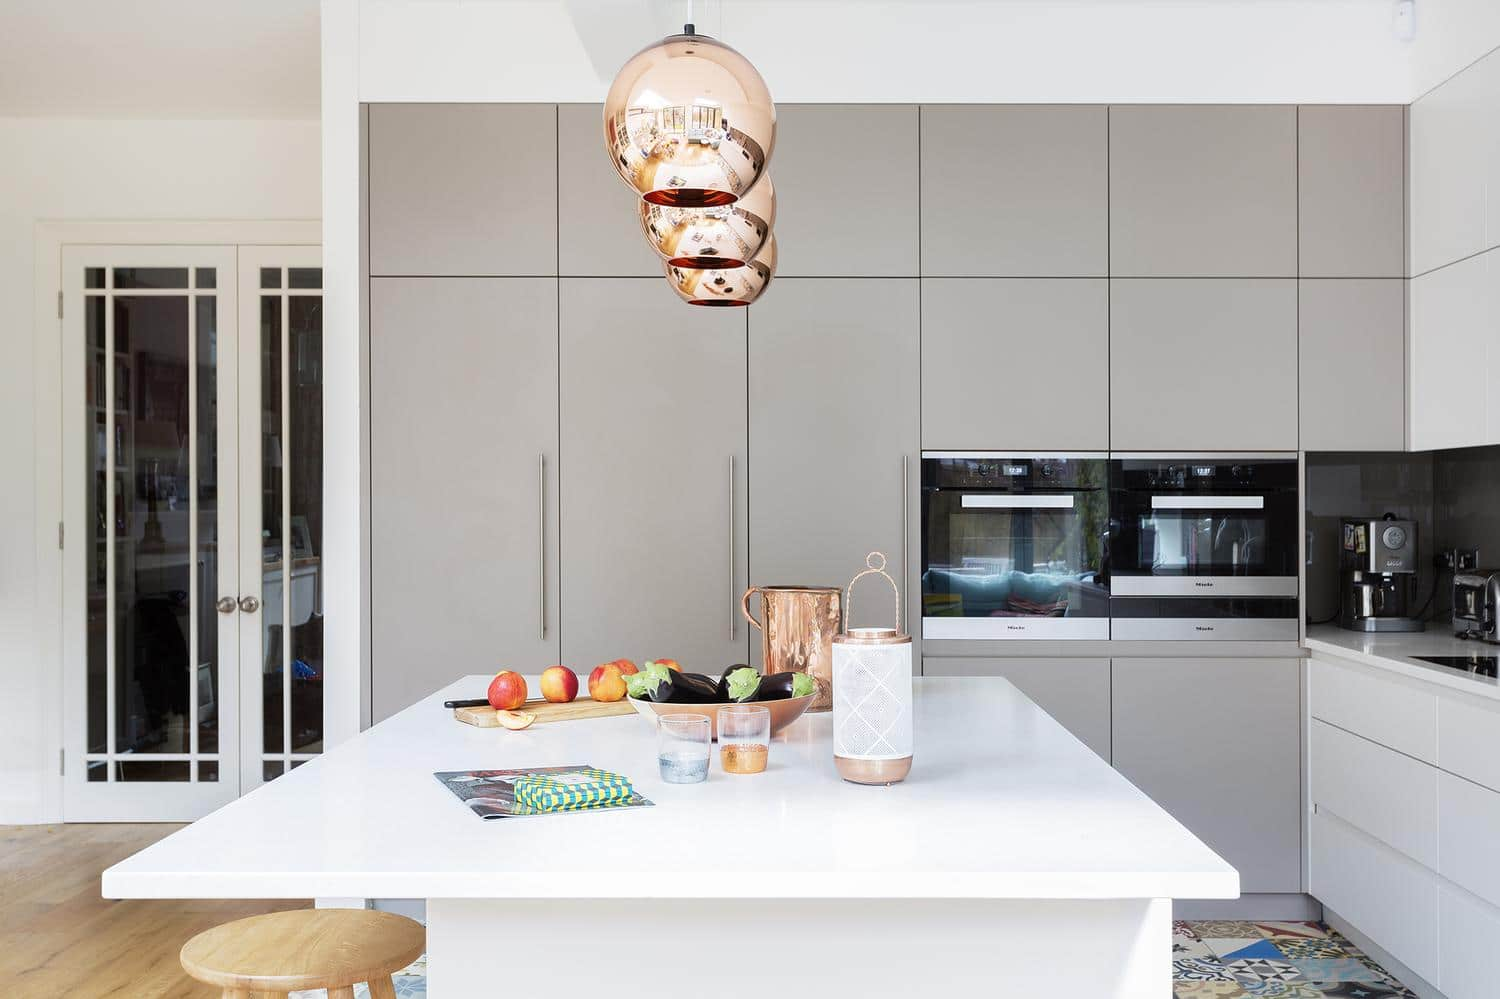 Room of the Week A Kitchen with Vintage and Copper Details 1